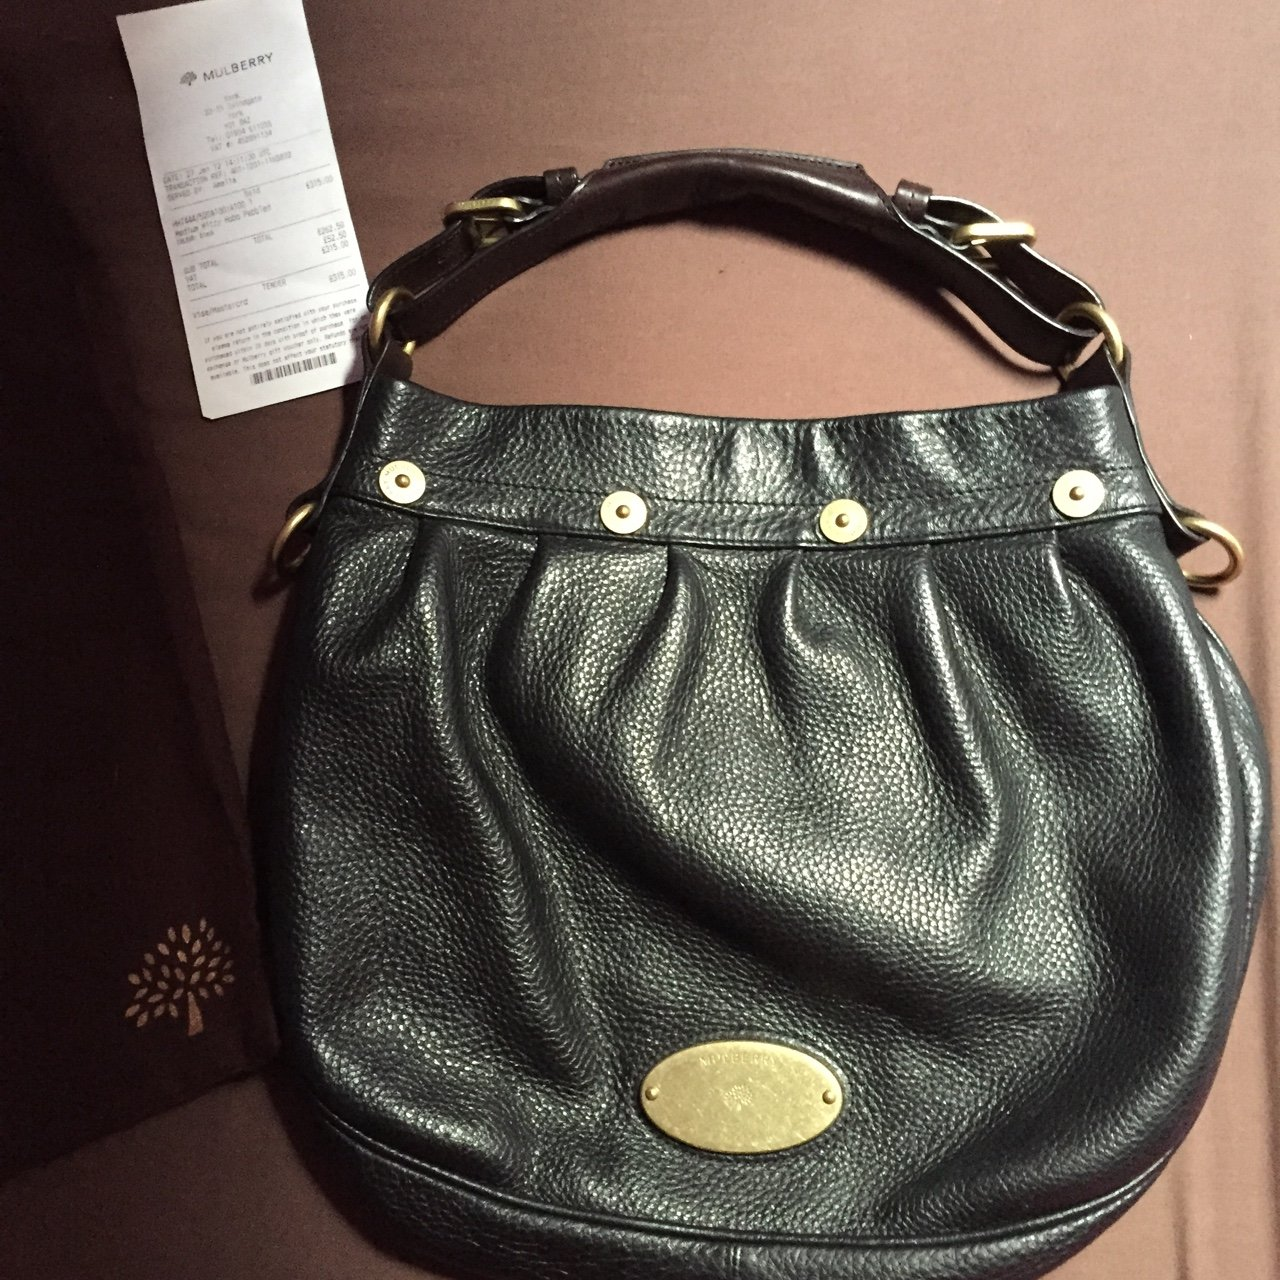 d7c58ebe58 Black Mulberry Mitzy hobo bag in small